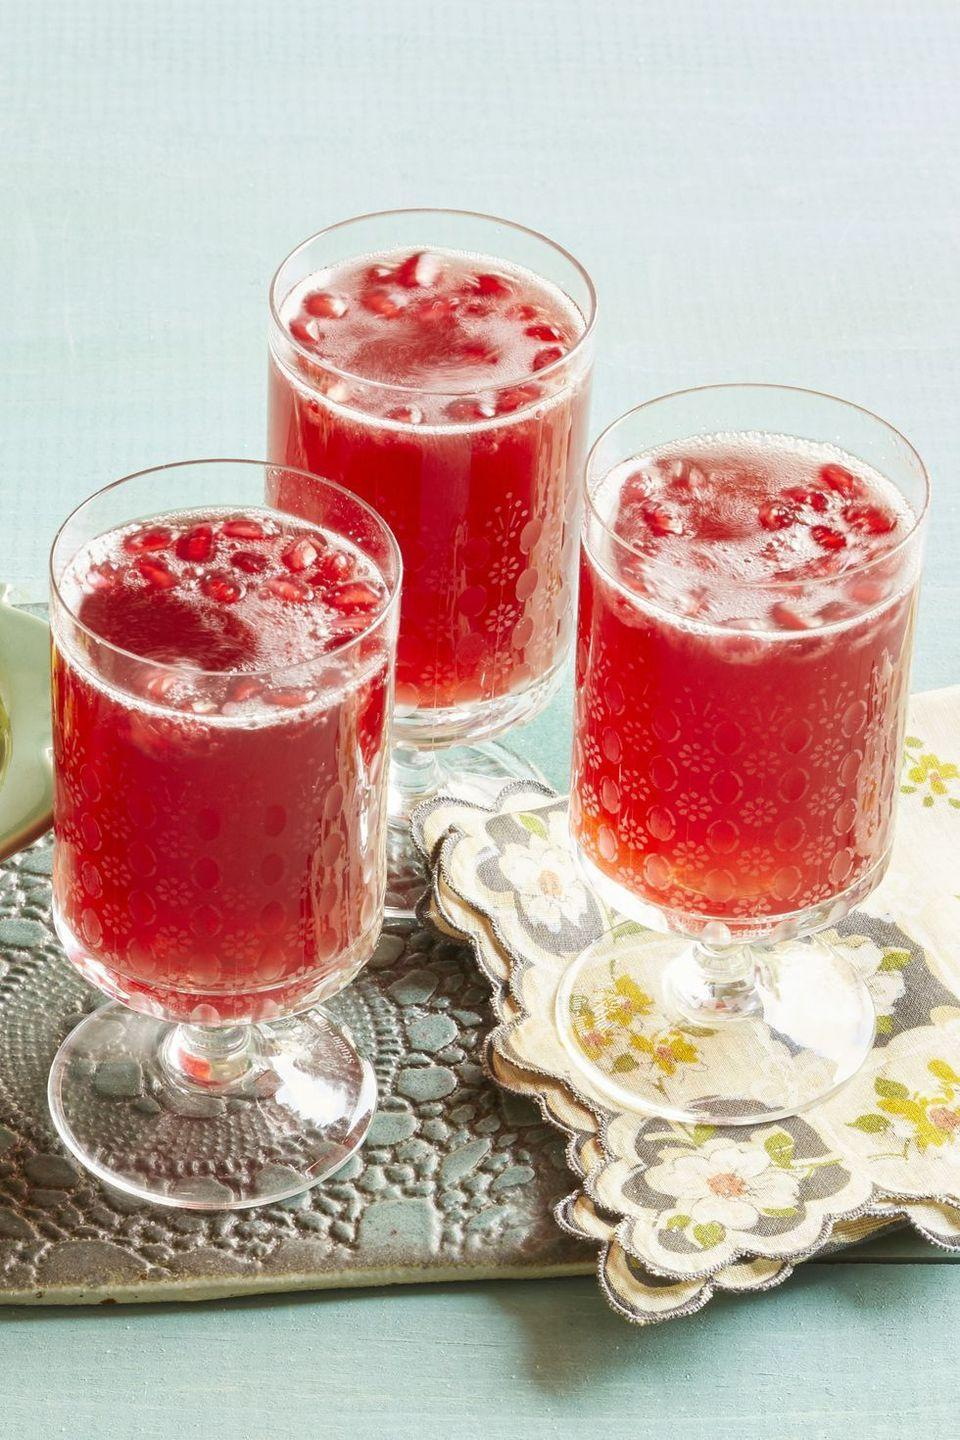 """<p>This sparkling wine cocktail only has three ingredients, so it's a super simple way to impress your guests. </p><p><em><strong>Get the recipe at <a href=""""https://www.thepioneerwoman.com/food-cooking/recipes/a32304789/pomegranate-sparklers-recipe/"""" rel=""""nofollow noopener"""" target=""""_blank"""" data-ylk=""""slk:The Pioneer Woman."""" class=""""link rapid-noclick-resp"""">The Pioneer Woman.</a></strong></em></p>"""